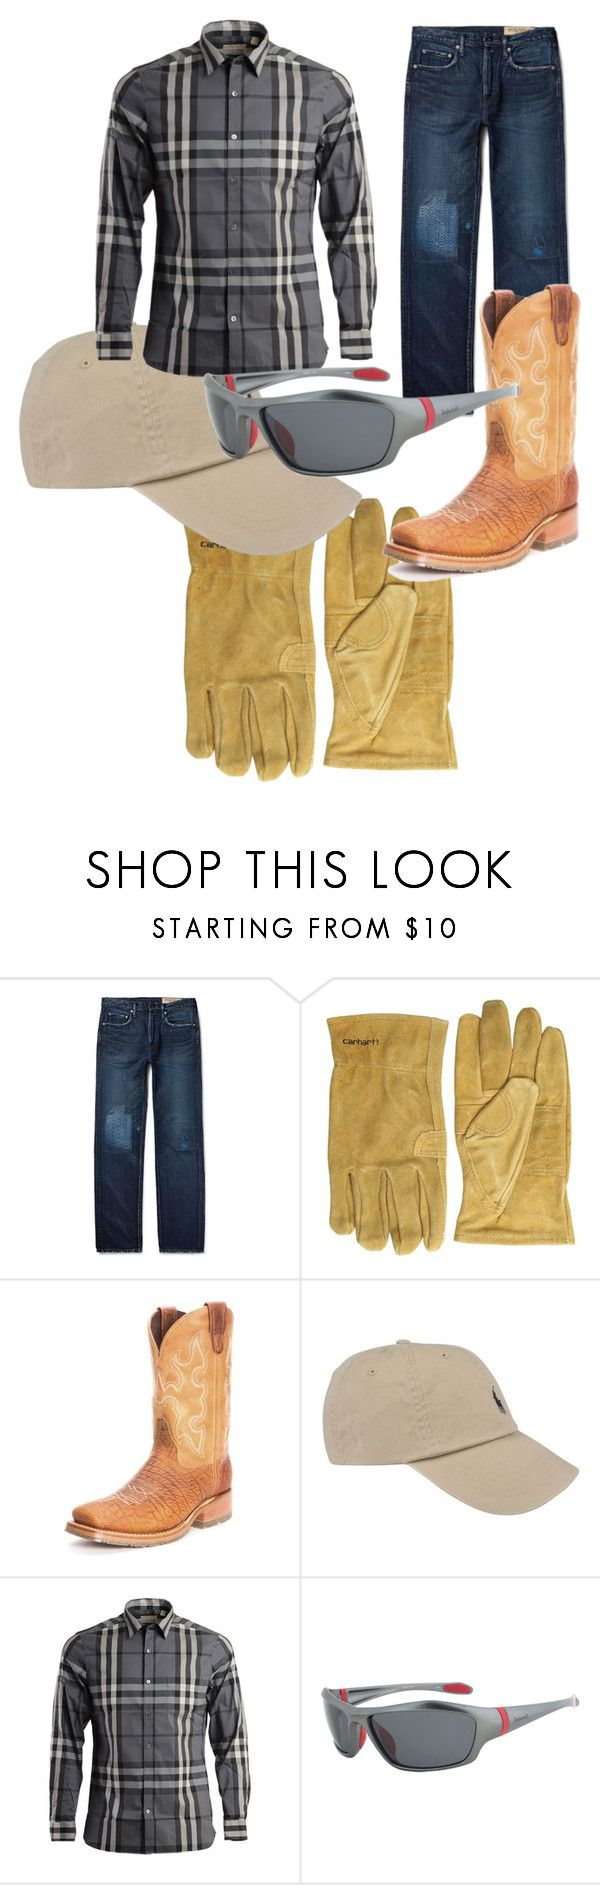 """""""Back To Work"""" by abren-chesser on Polyvore featuring Kapital, Carhartt, Double-H Boots, Polo Ralph Lauren, Burberry, Timberland, mens, men, men's wear and mens wear"""